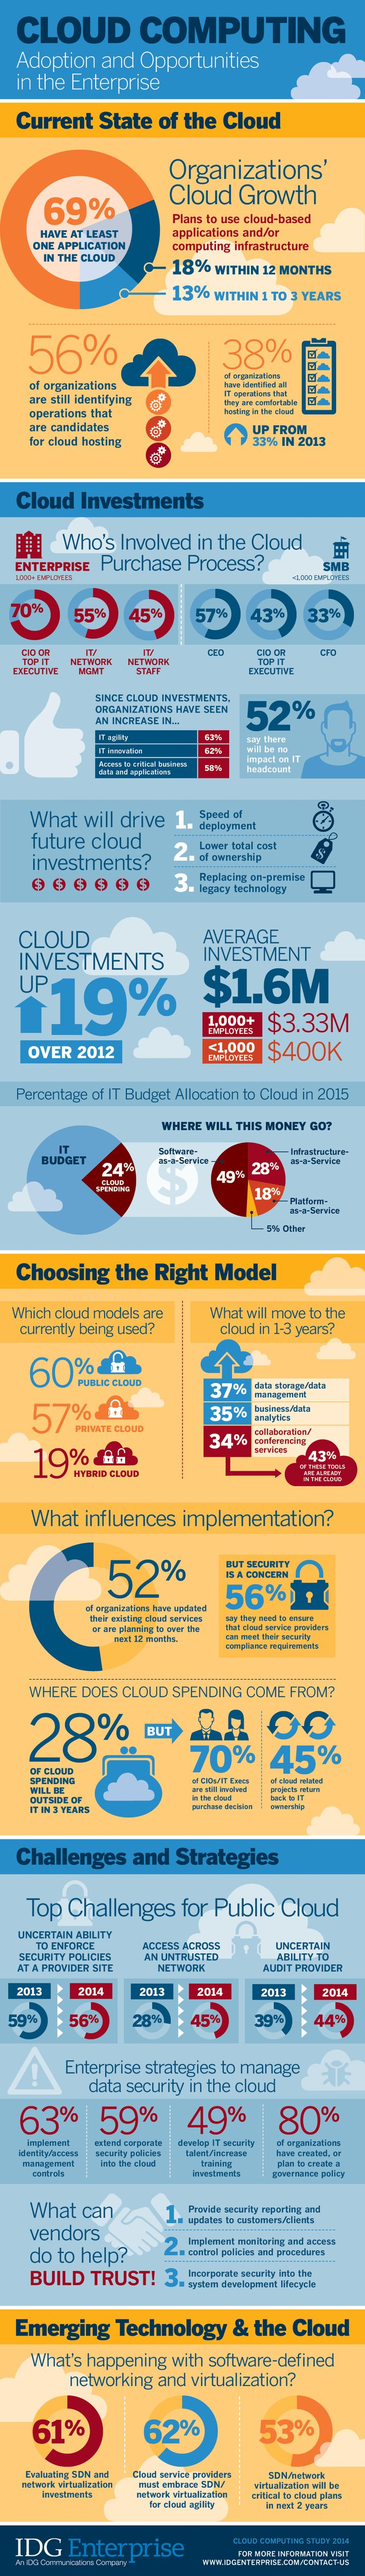 best images about cloud computing in the clouds state of cloud computing in the enterprise cloud cloudcomputinf infographic